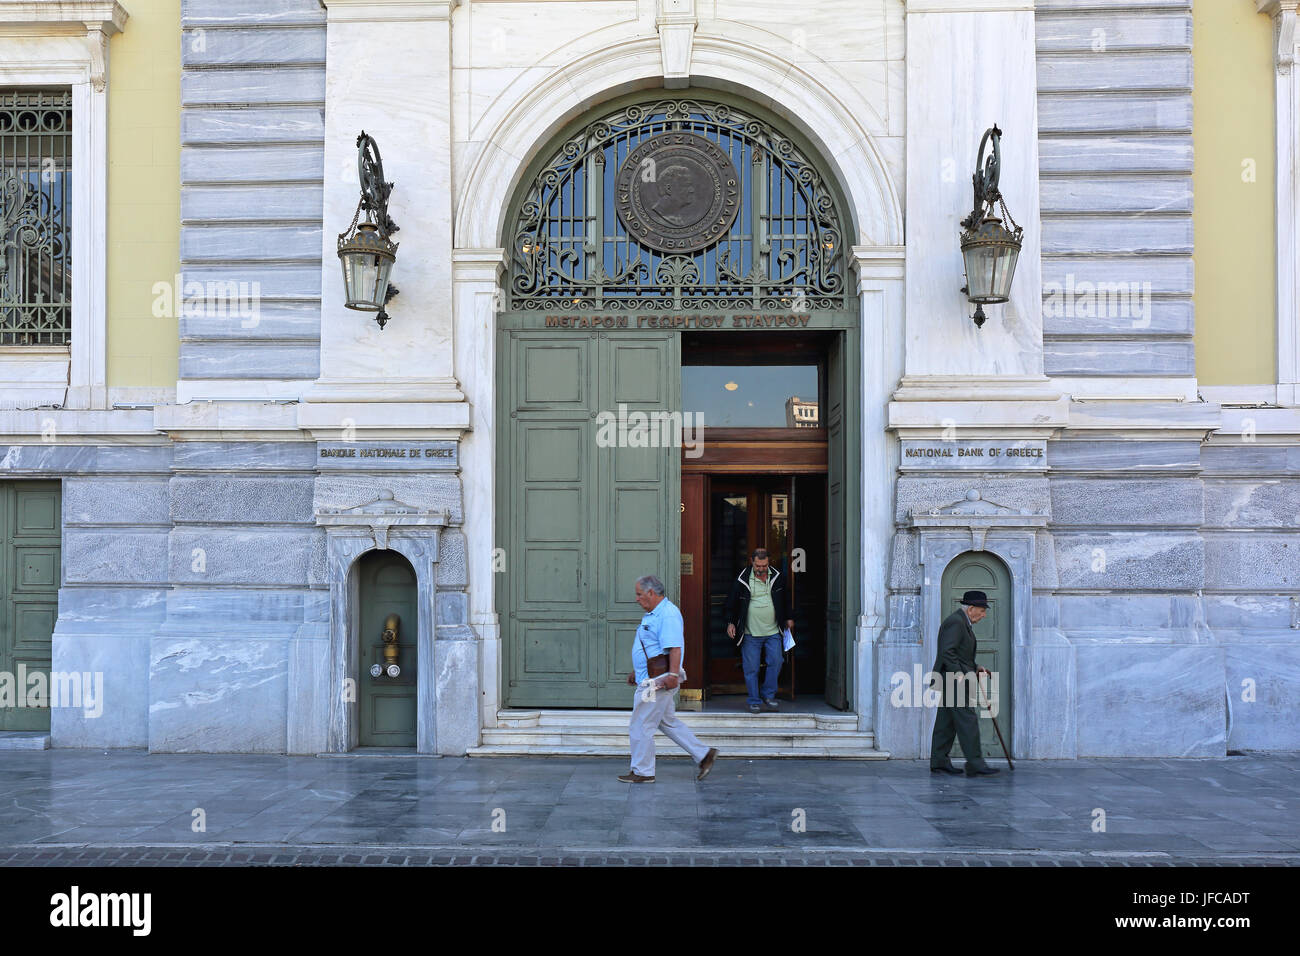 Greece National Bank - Stock Image